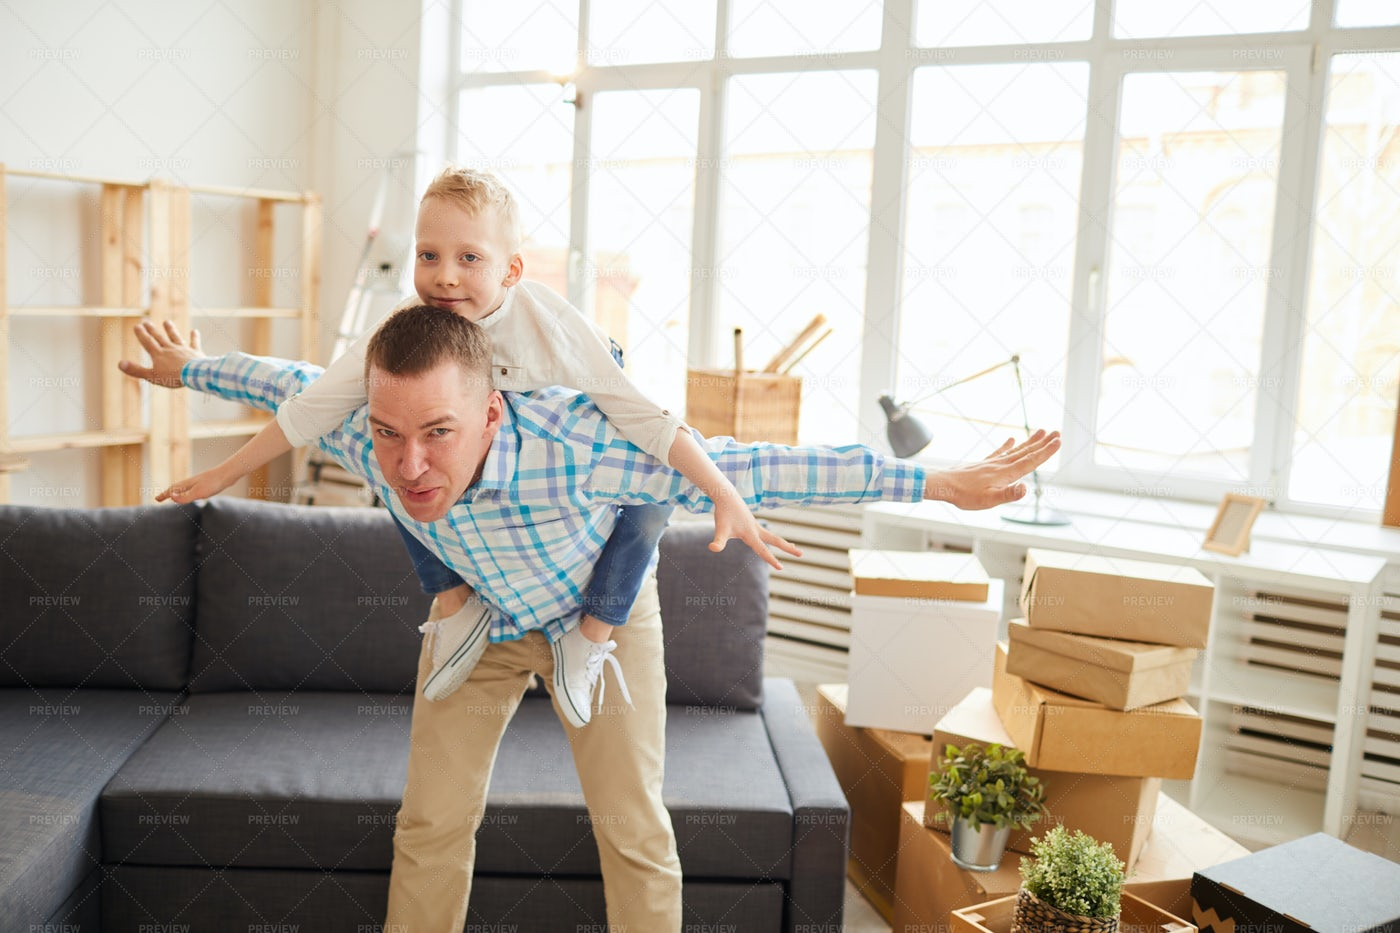 Playing Airplane With Son: Stock Photos